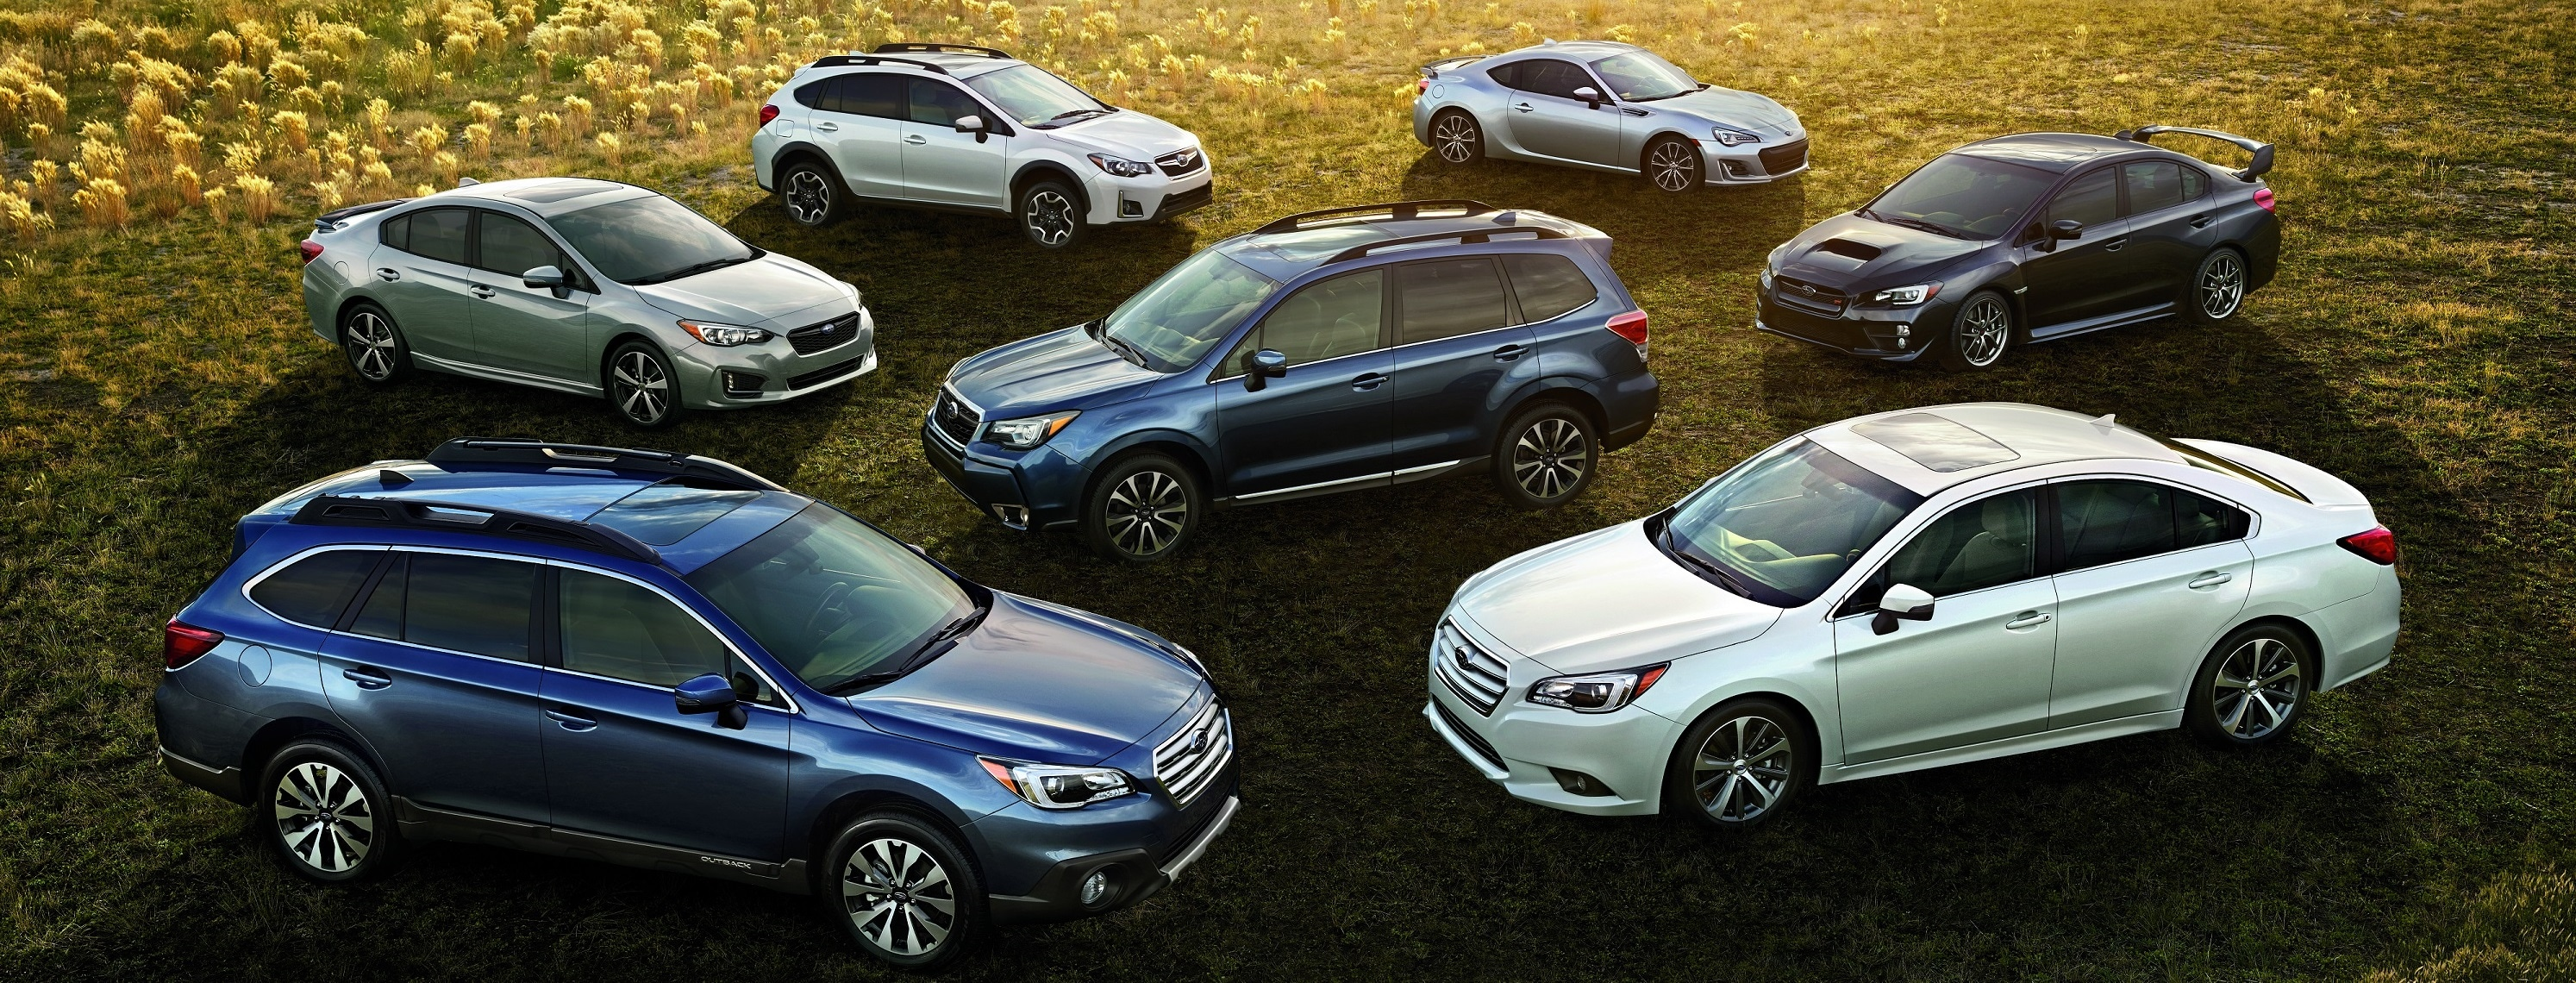 Used Subaru Cars And Suvs For Sale In Freehold Nj